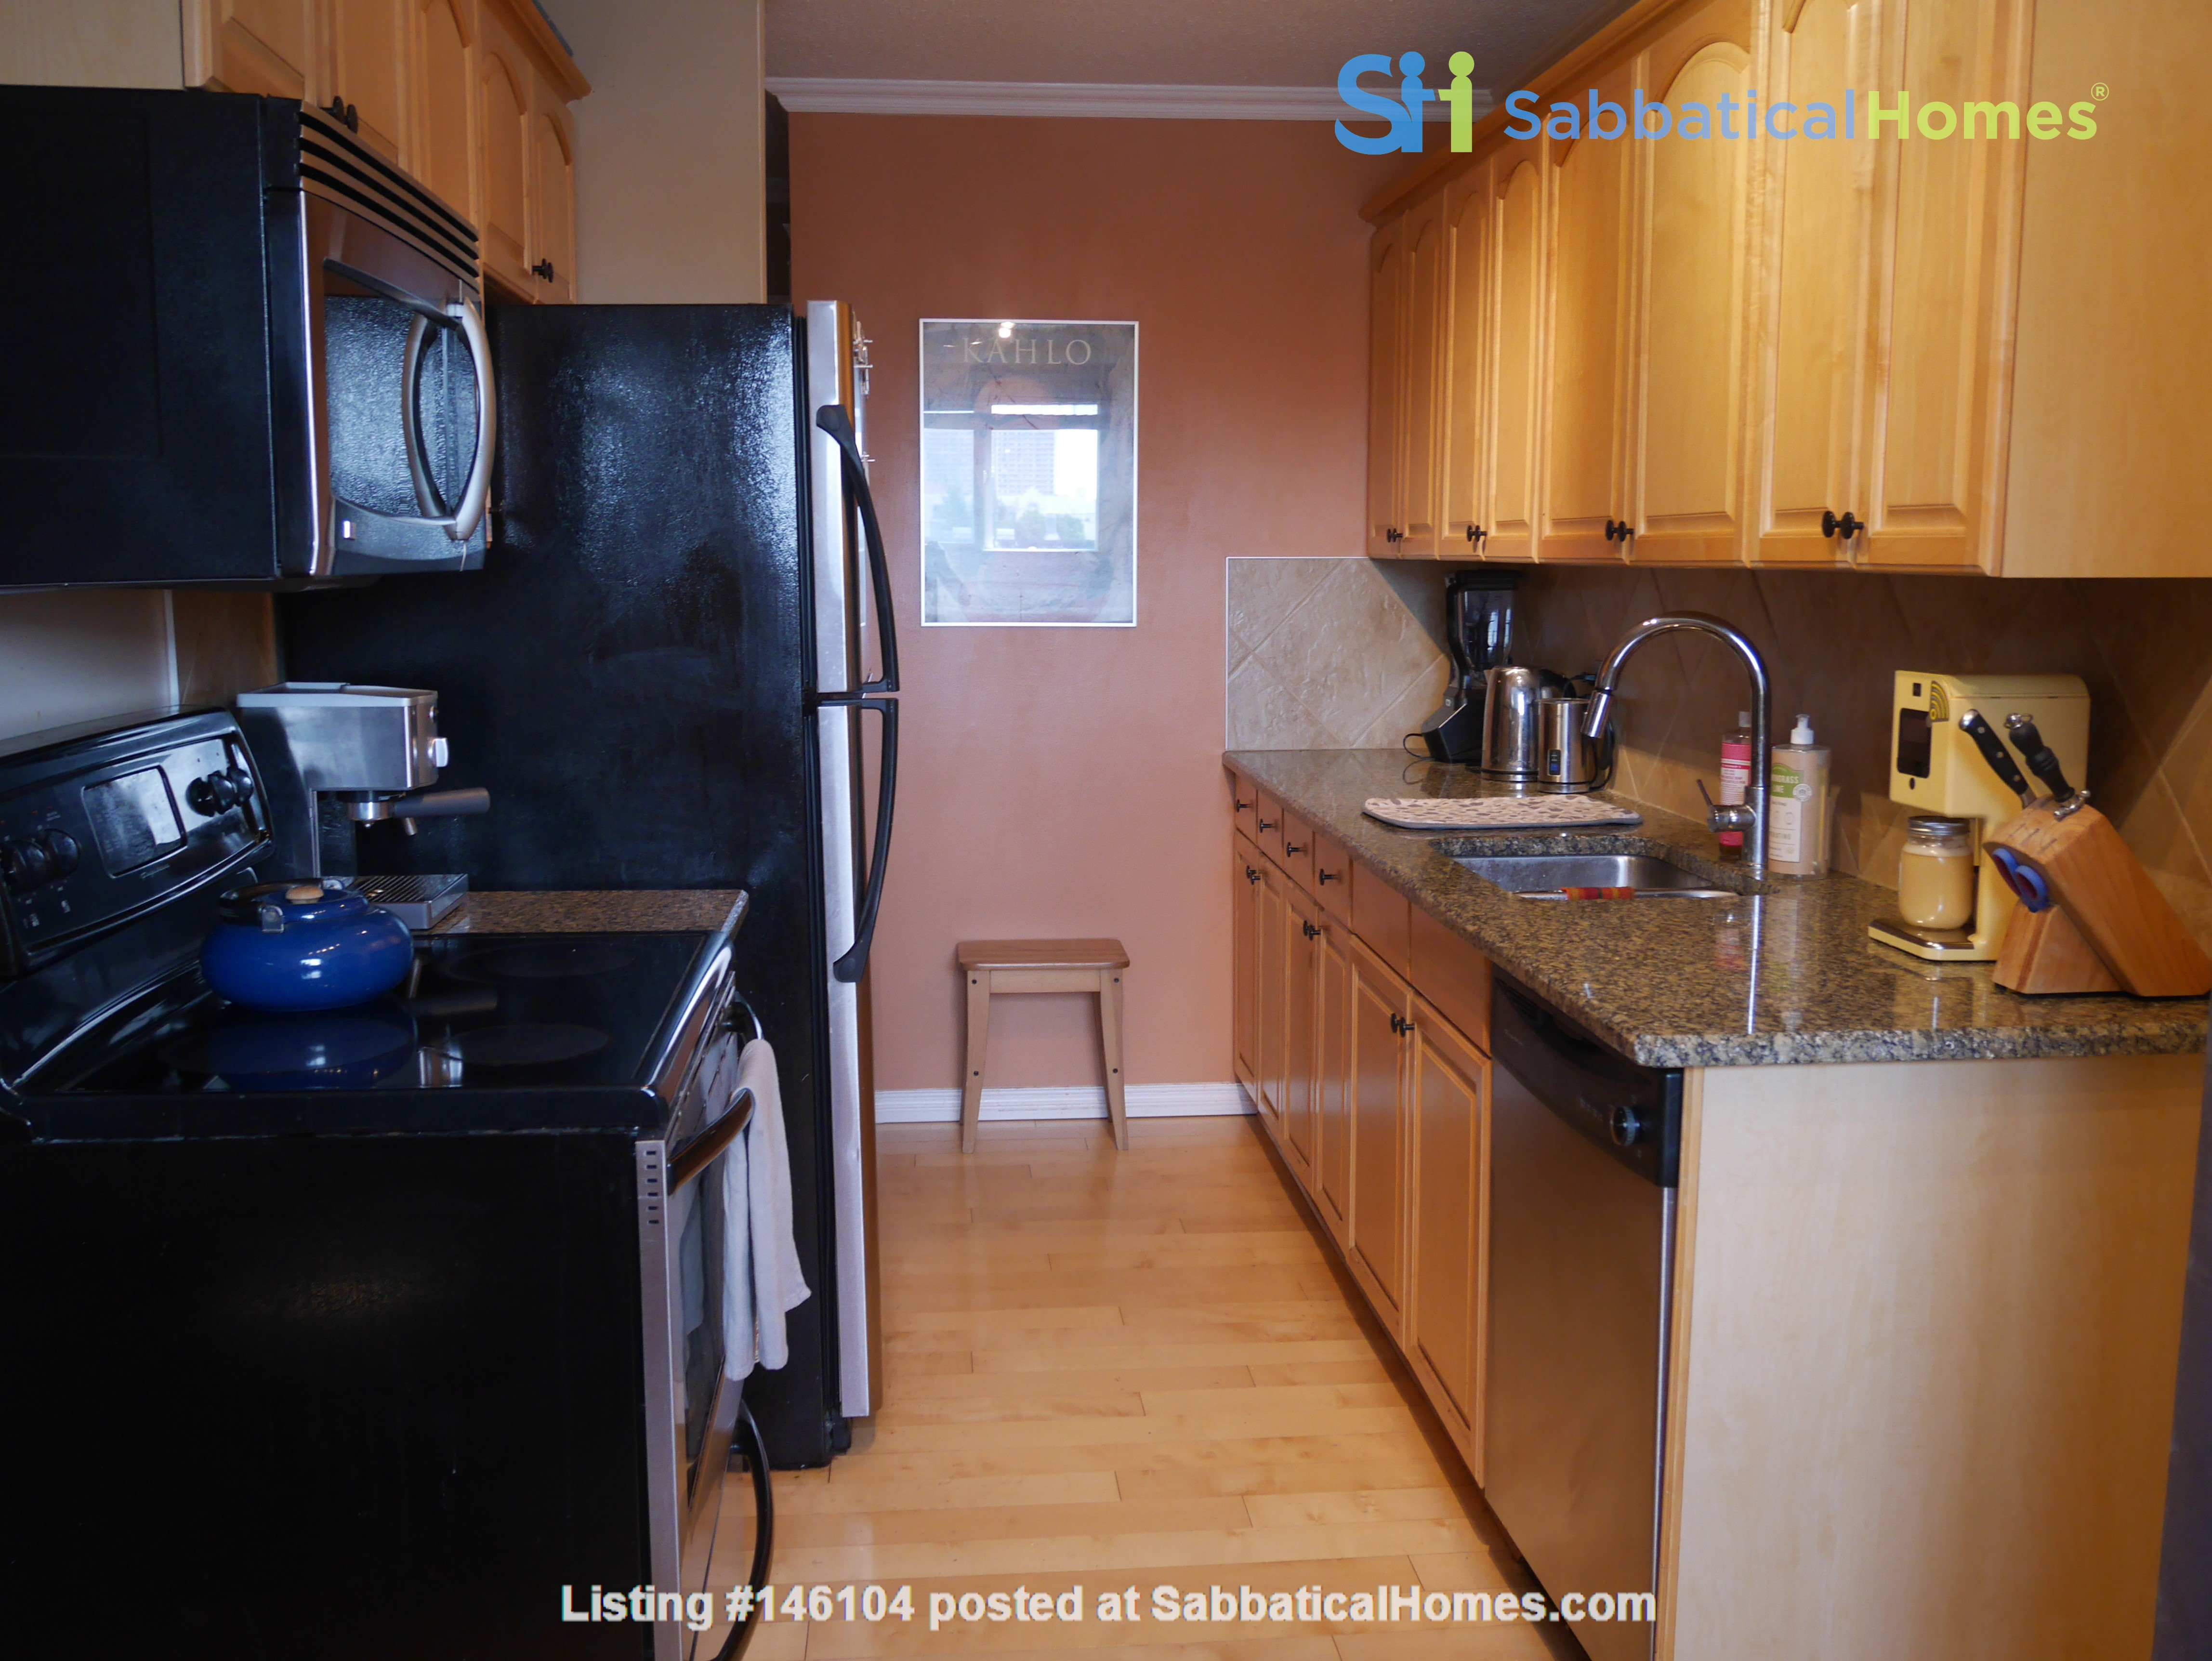 Top corner condo, heart of Old Strathcona. Great space for academic/couple! Home Rental in Edmonton 4